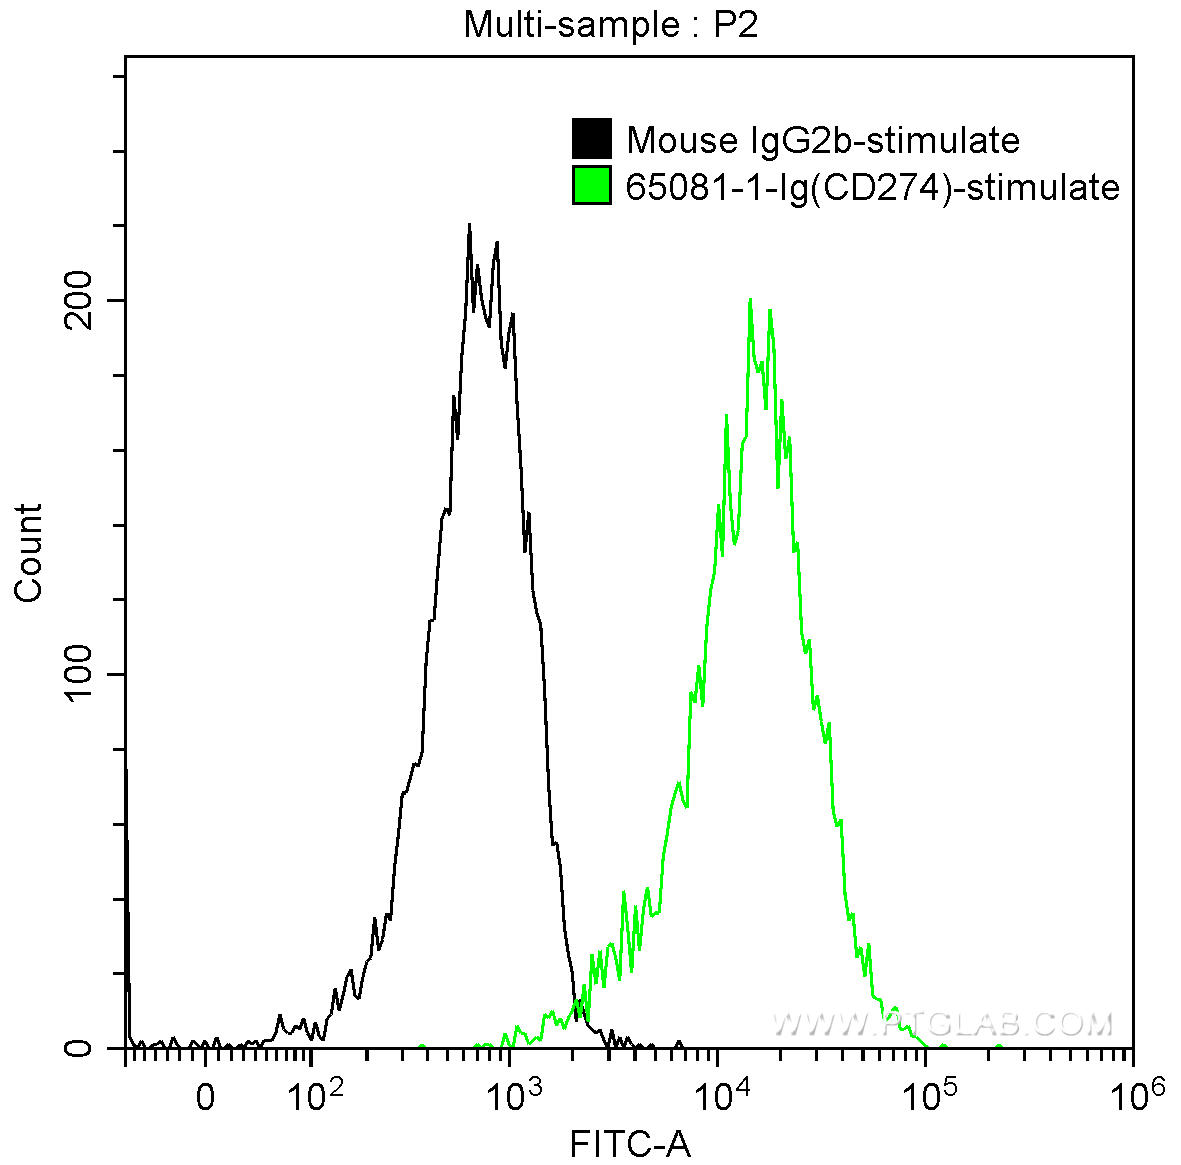 1X10^6 PHA-stimulated (5 ug/ml, 3 days) human peripheral blood lymphocytes were surface stained with 0.25 ug Anti-Human PD-L1 (B7-H1) (65081-1-Ig, Clone: 29E.2A3) and CoraLite®488-Conjugated AffiniPure Goat Anti-Mouse IgG(H+L) at dilution 1:1000 (green), or stained with 0.25 ug mouse IgG2b isotype control and CoraLite®488-Conjugated AffiniPure Goat Anti-Mouse IgG(H+L) at dilution 1:1000 (black). Cells were not fixed.